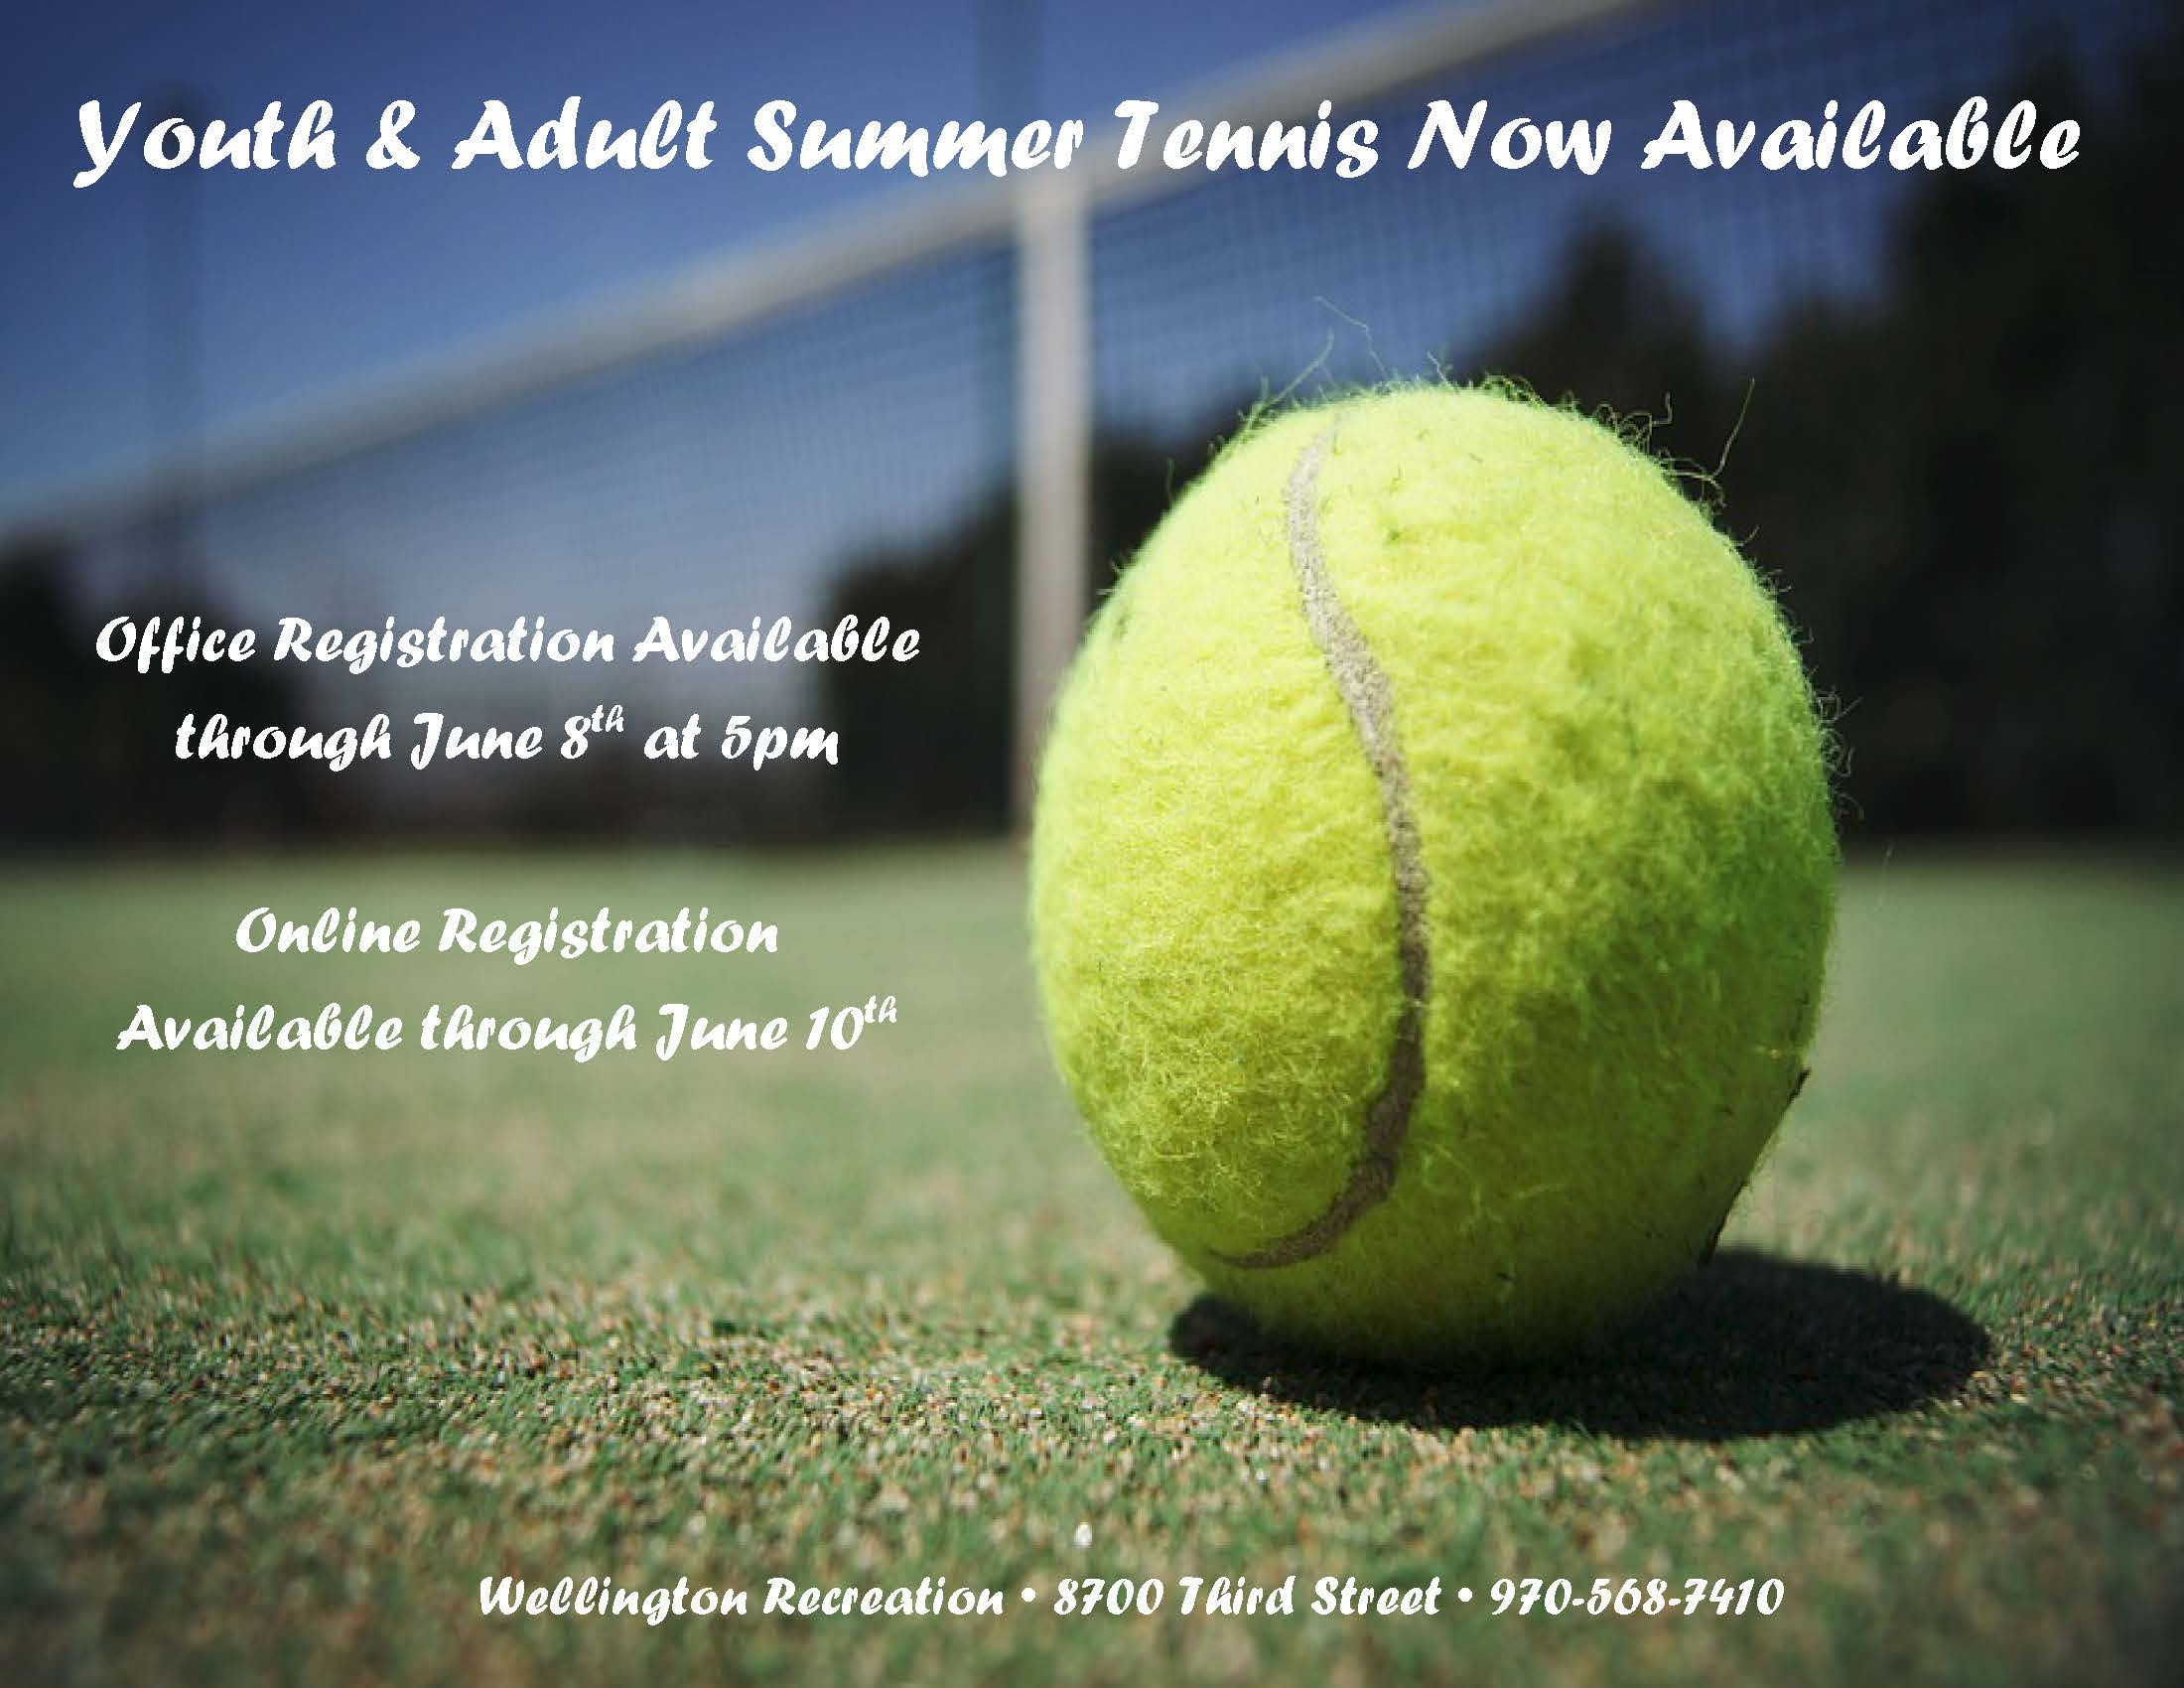 TENNIS NOW AVAILABLE